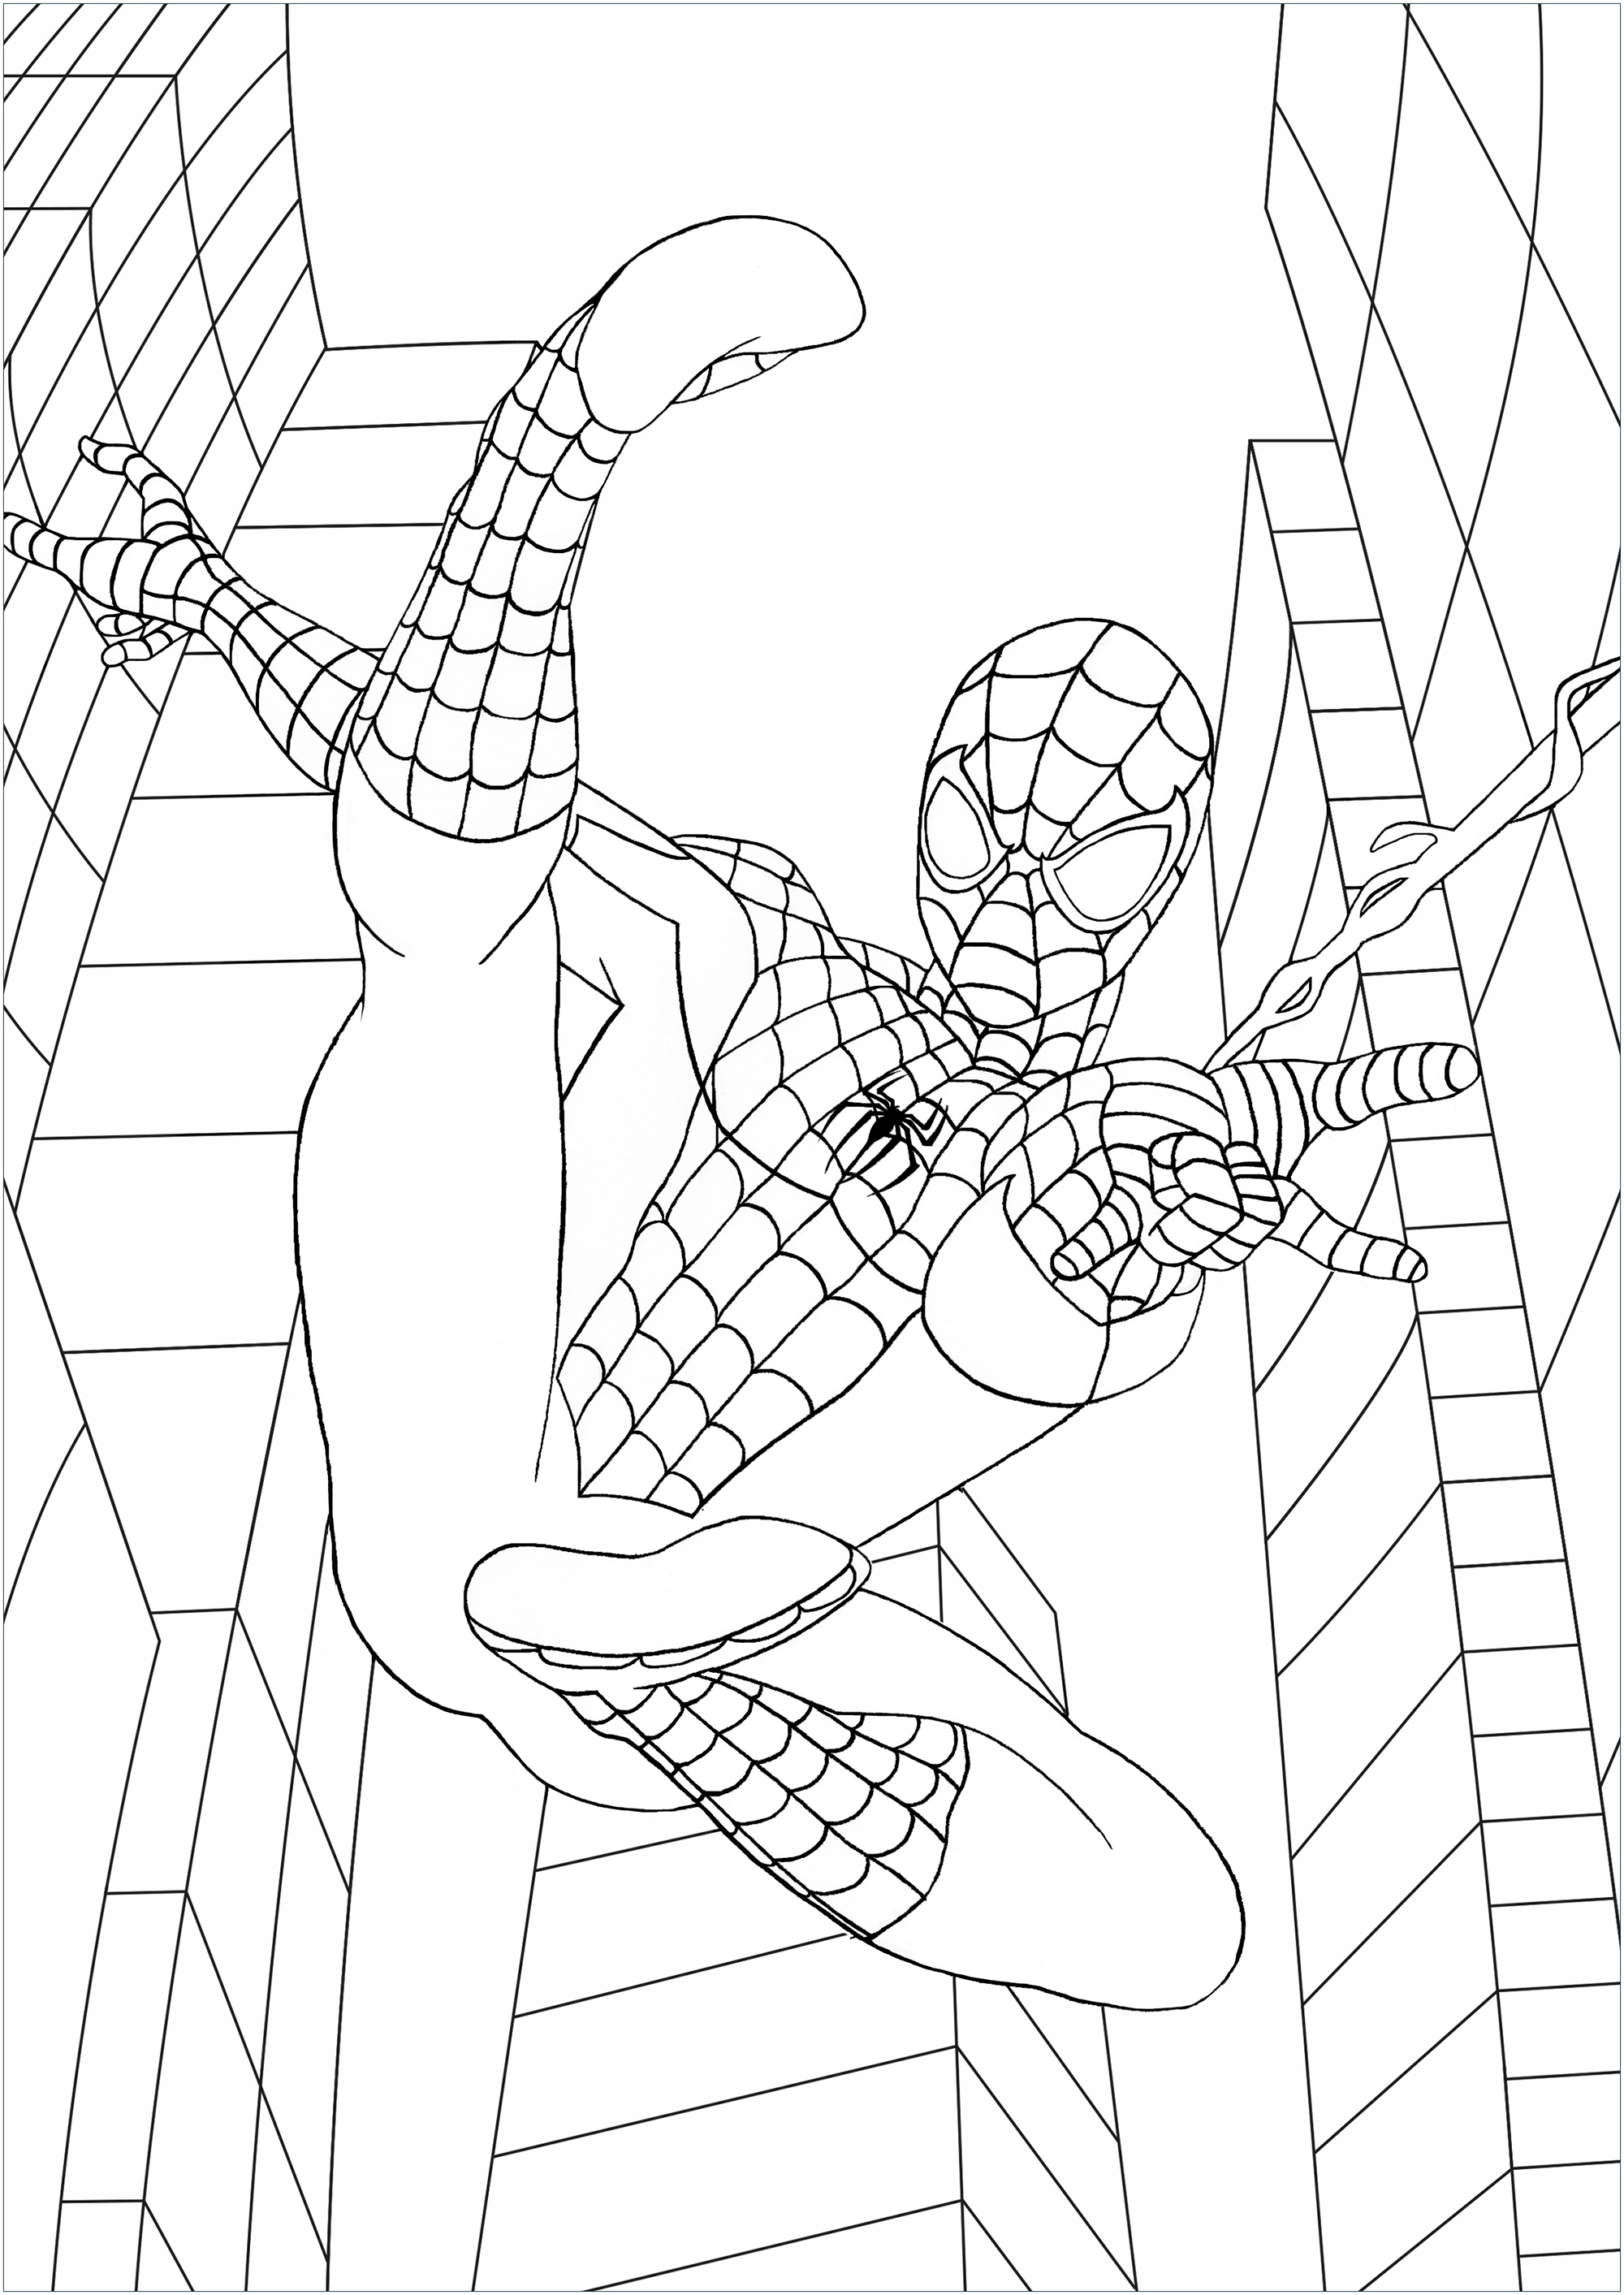 Spider-Man is one of the most popular and commercially successful superheroes. Color him in action in New York ! Marvel has featured Spider-Man in several comic book series, the first and longest-lasting of which is The Amazing Spider-Man. Over the years, the Peter Parker character developed from a shy, nerdy New York City high school student to troubled but outgoing college student, to married high school teacher to, in the late 2000s, a single freelance photographer. In the 2010s, he joins the Avengers, Marvel's flagship superhero team.